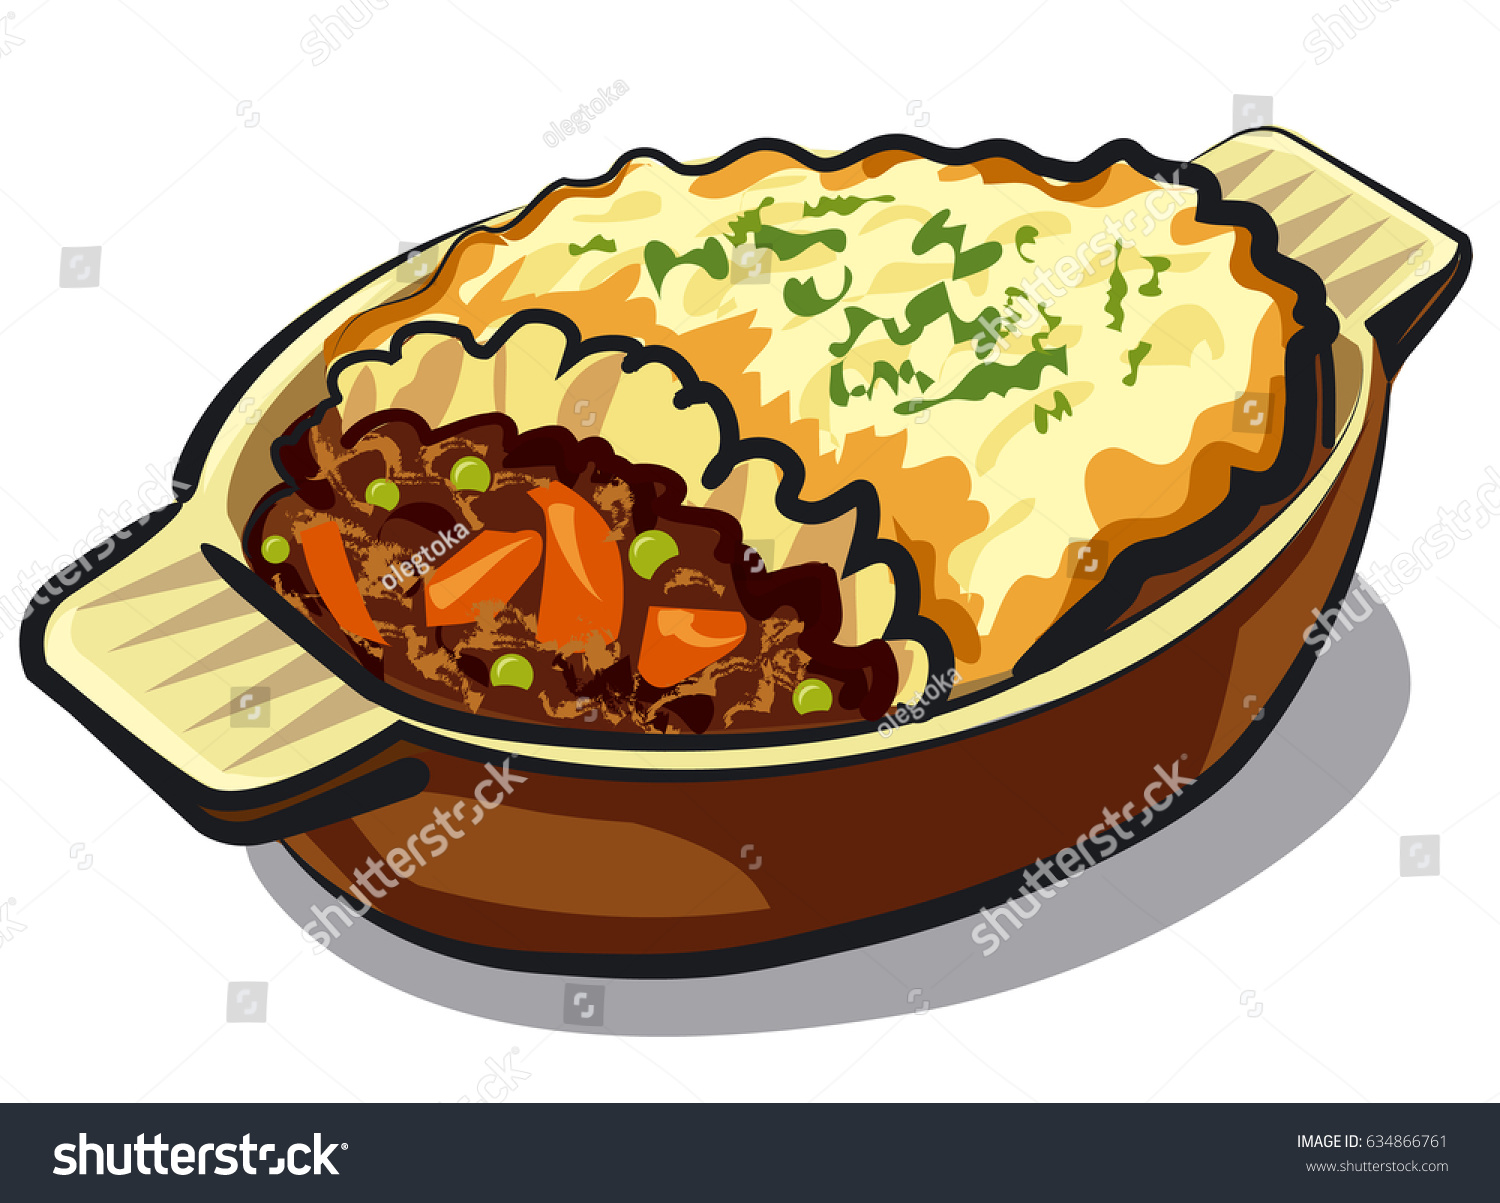 Shepards Pie Clipart.